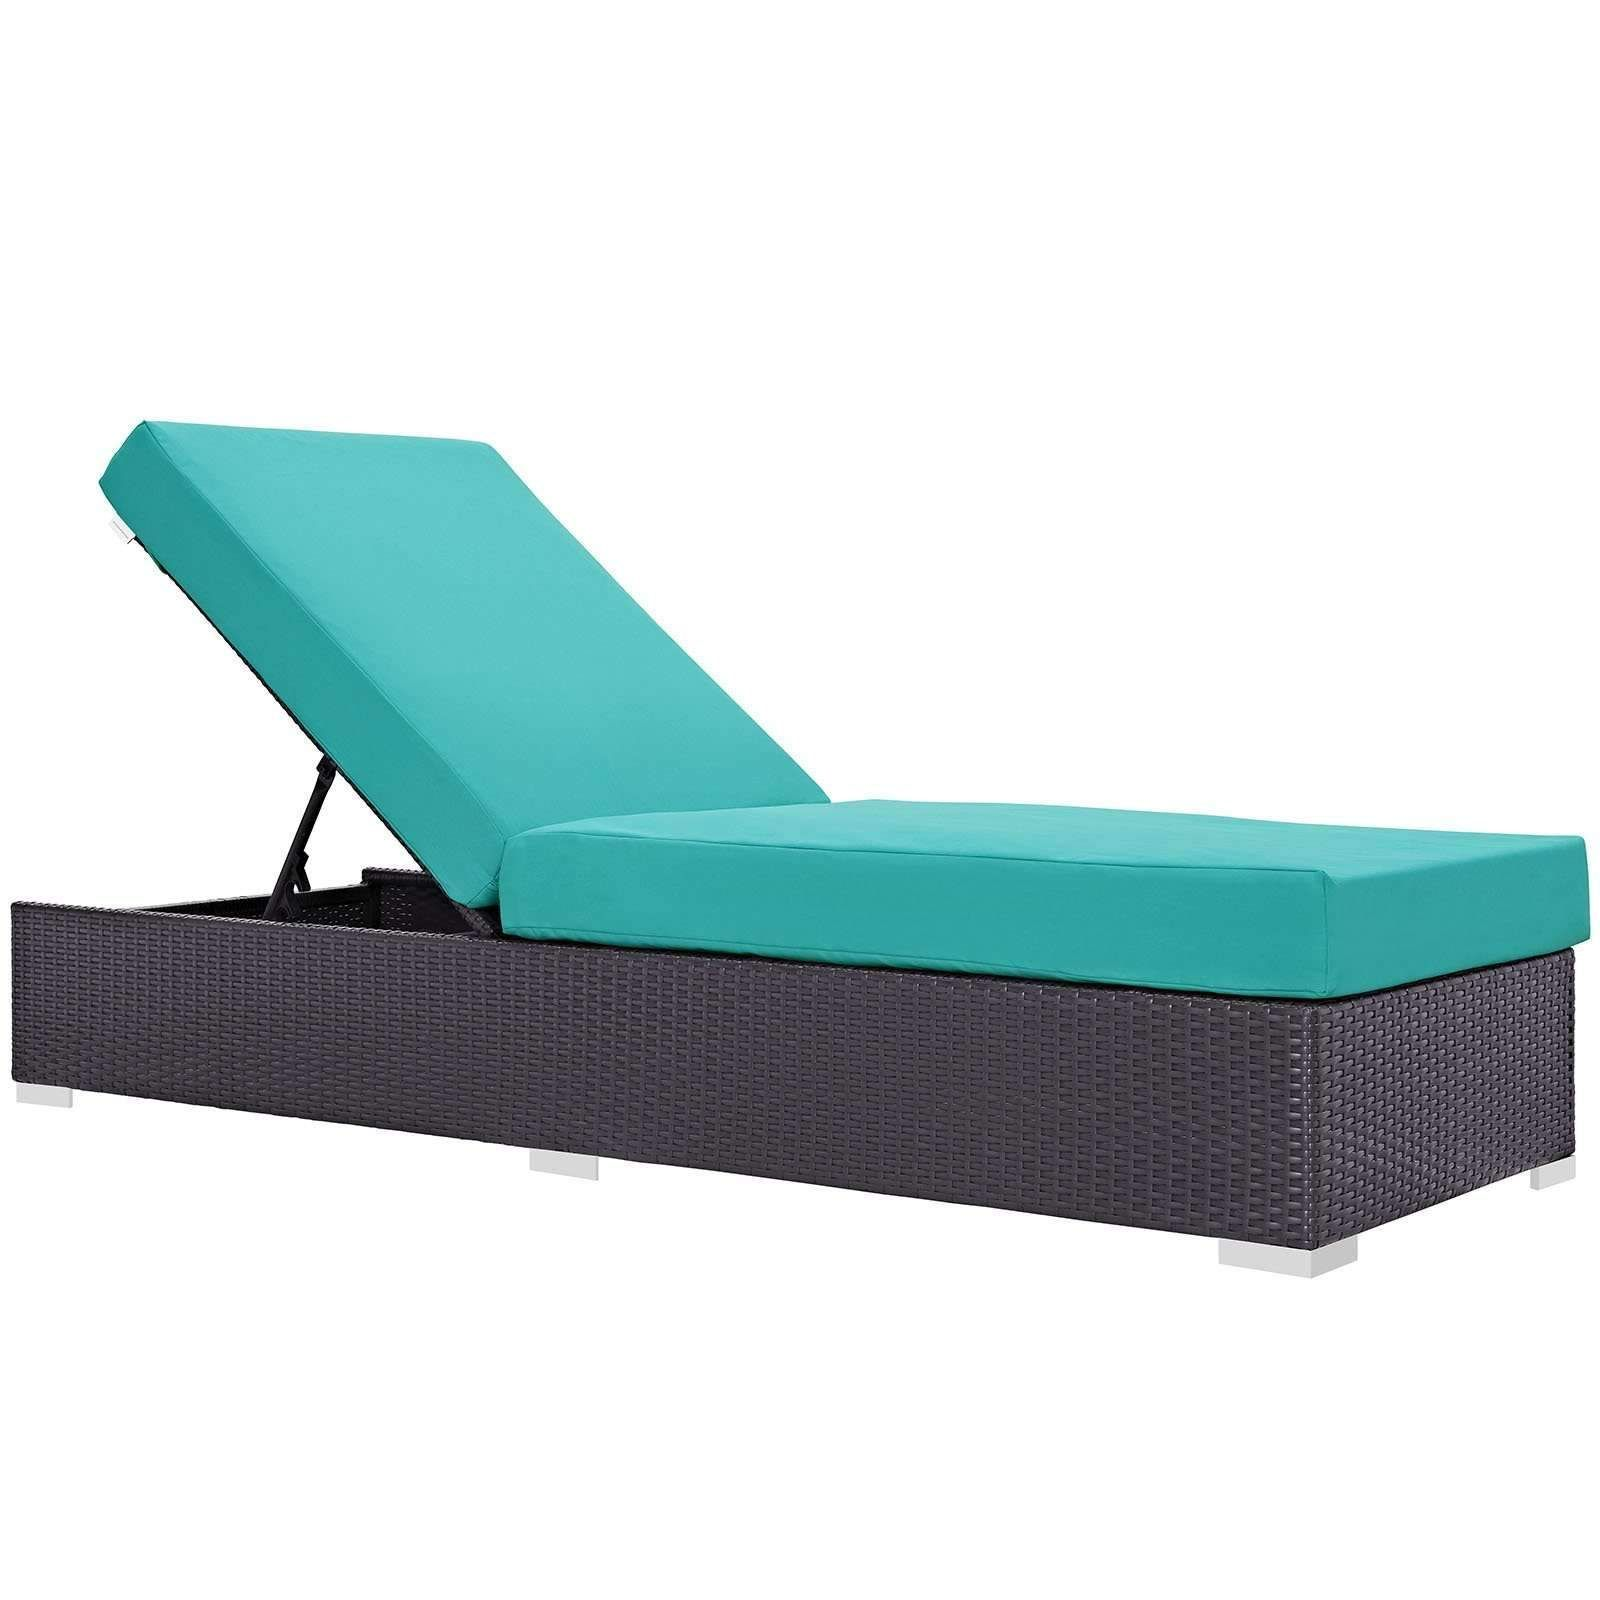 convene outdoor patio chaise lounge eei 1846 patio chaise lounge